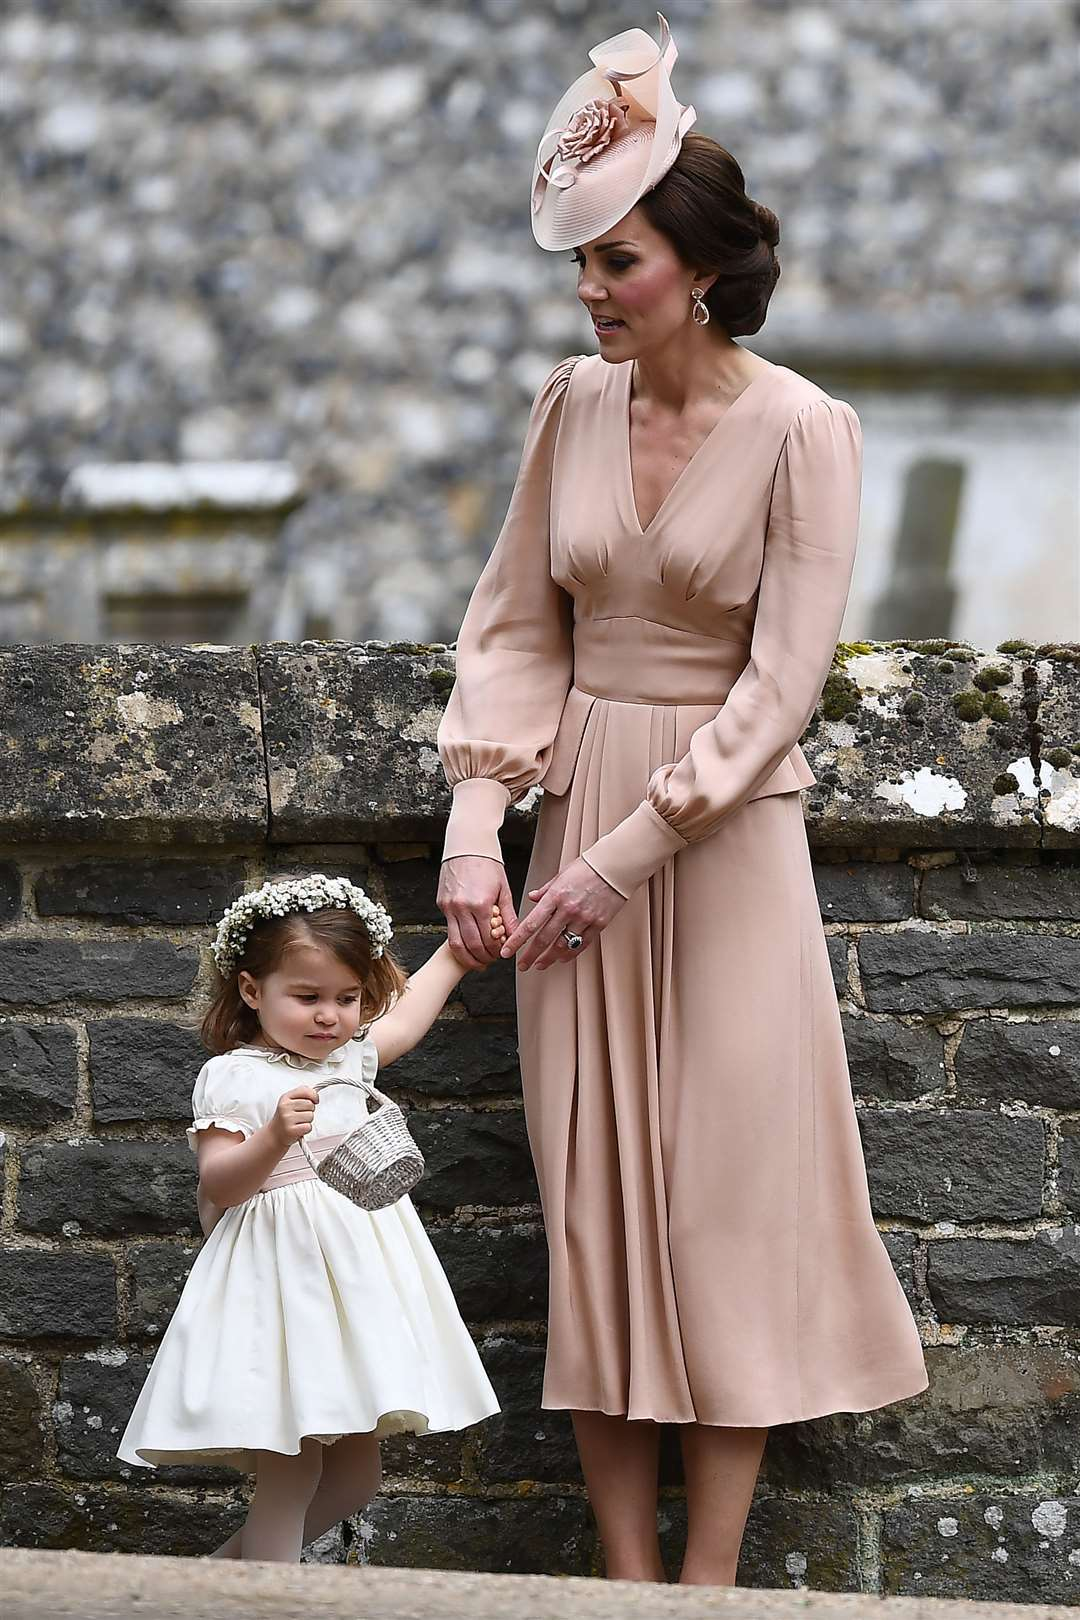 The Duchess of Cambridge with her daughter Princess Charlotte at the wedding of Pippa Middleton and James Matthews